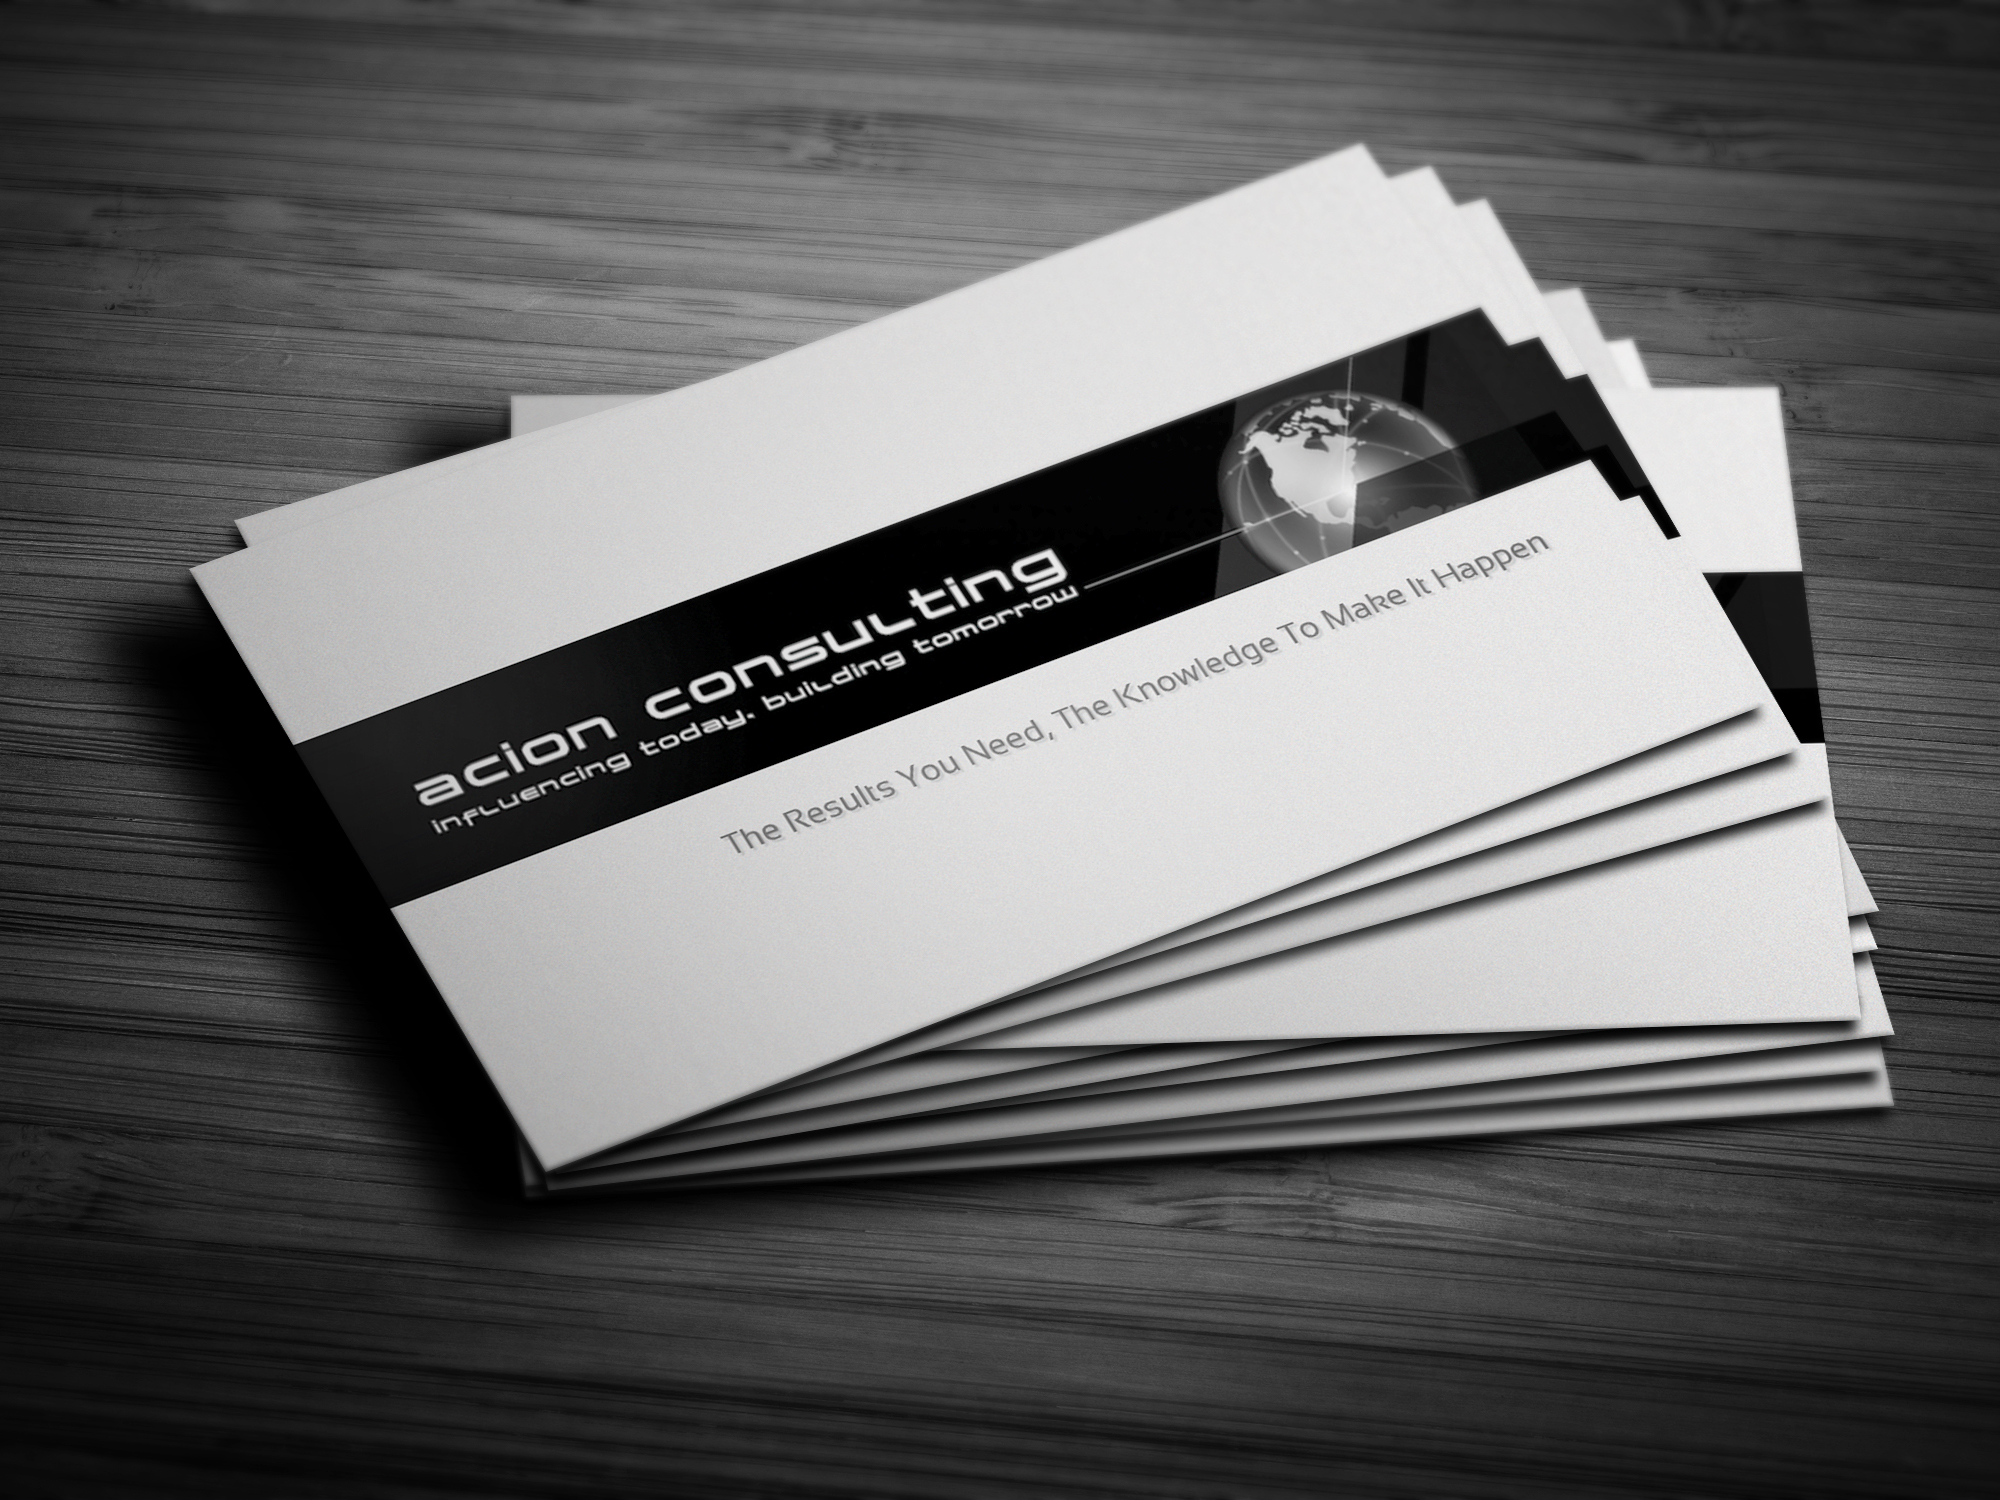 Acion Consulting Business Cards